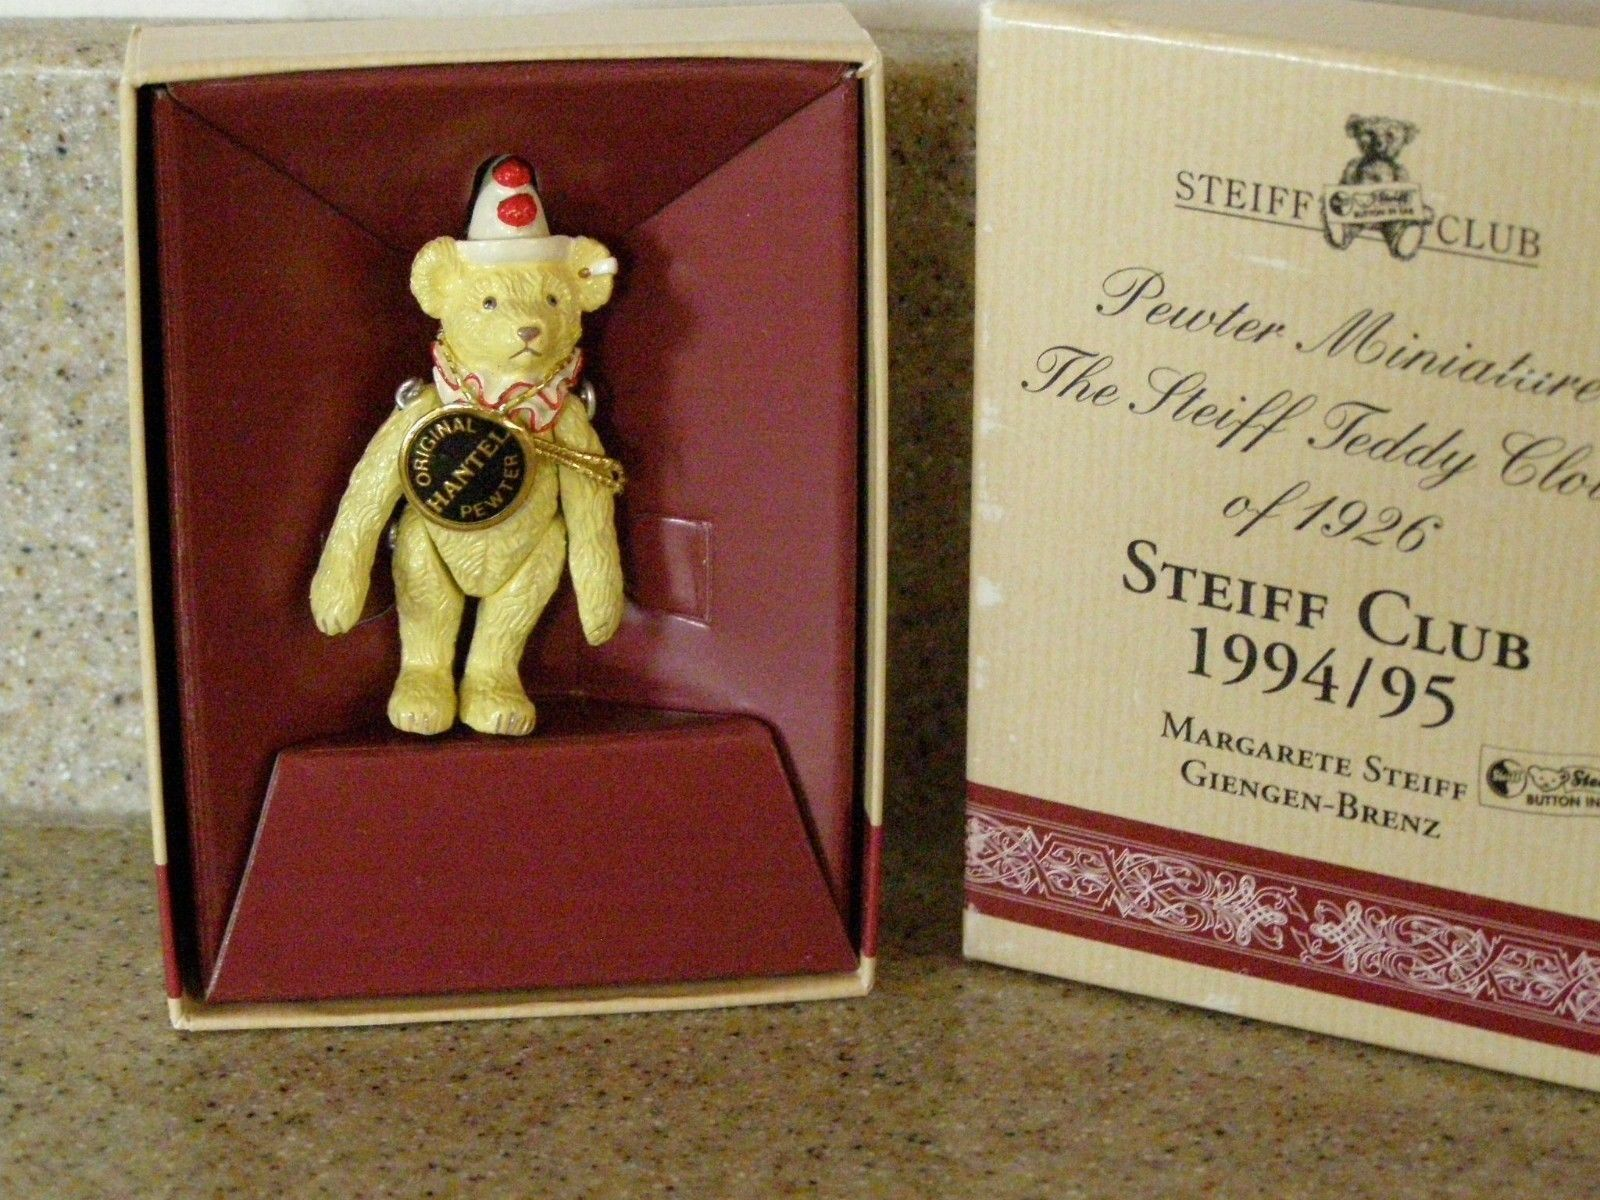 STEIFF Pewter Miniature Teddy Clown of 1926 Steiff Club 1994/95 NEW with Box